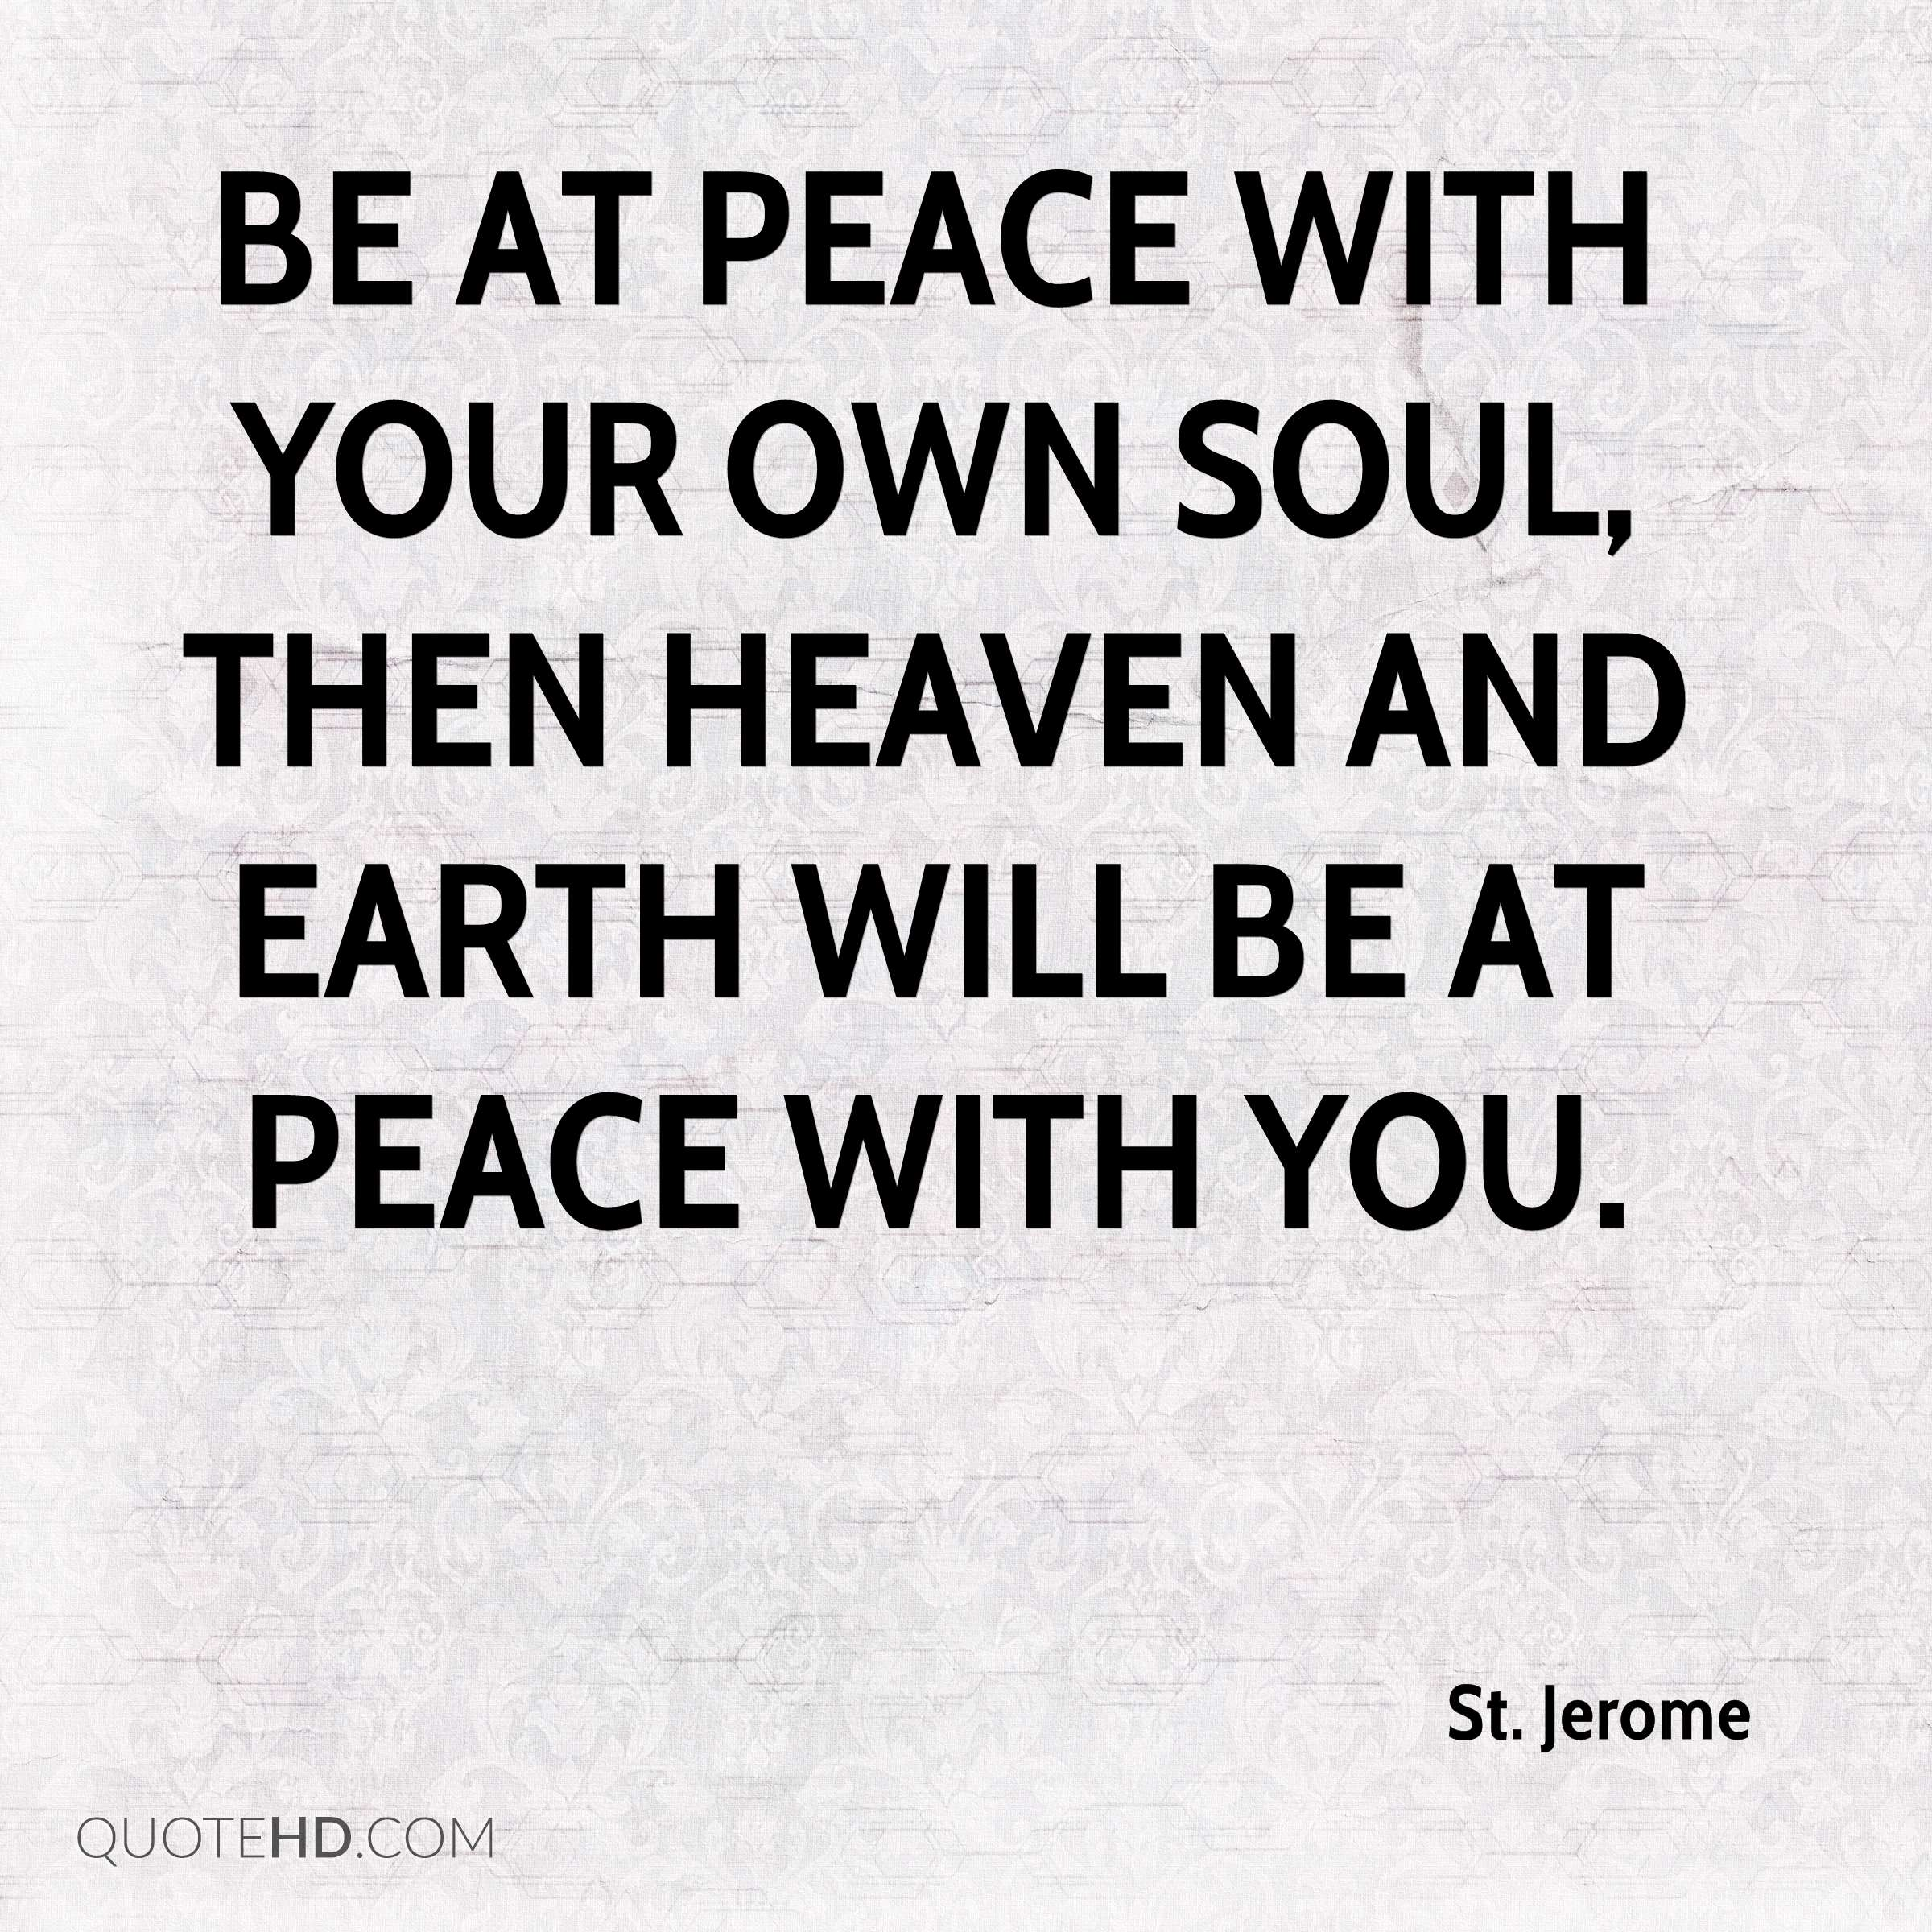 Be at peace with your own soul, then heaven and earth will be at peace with you.